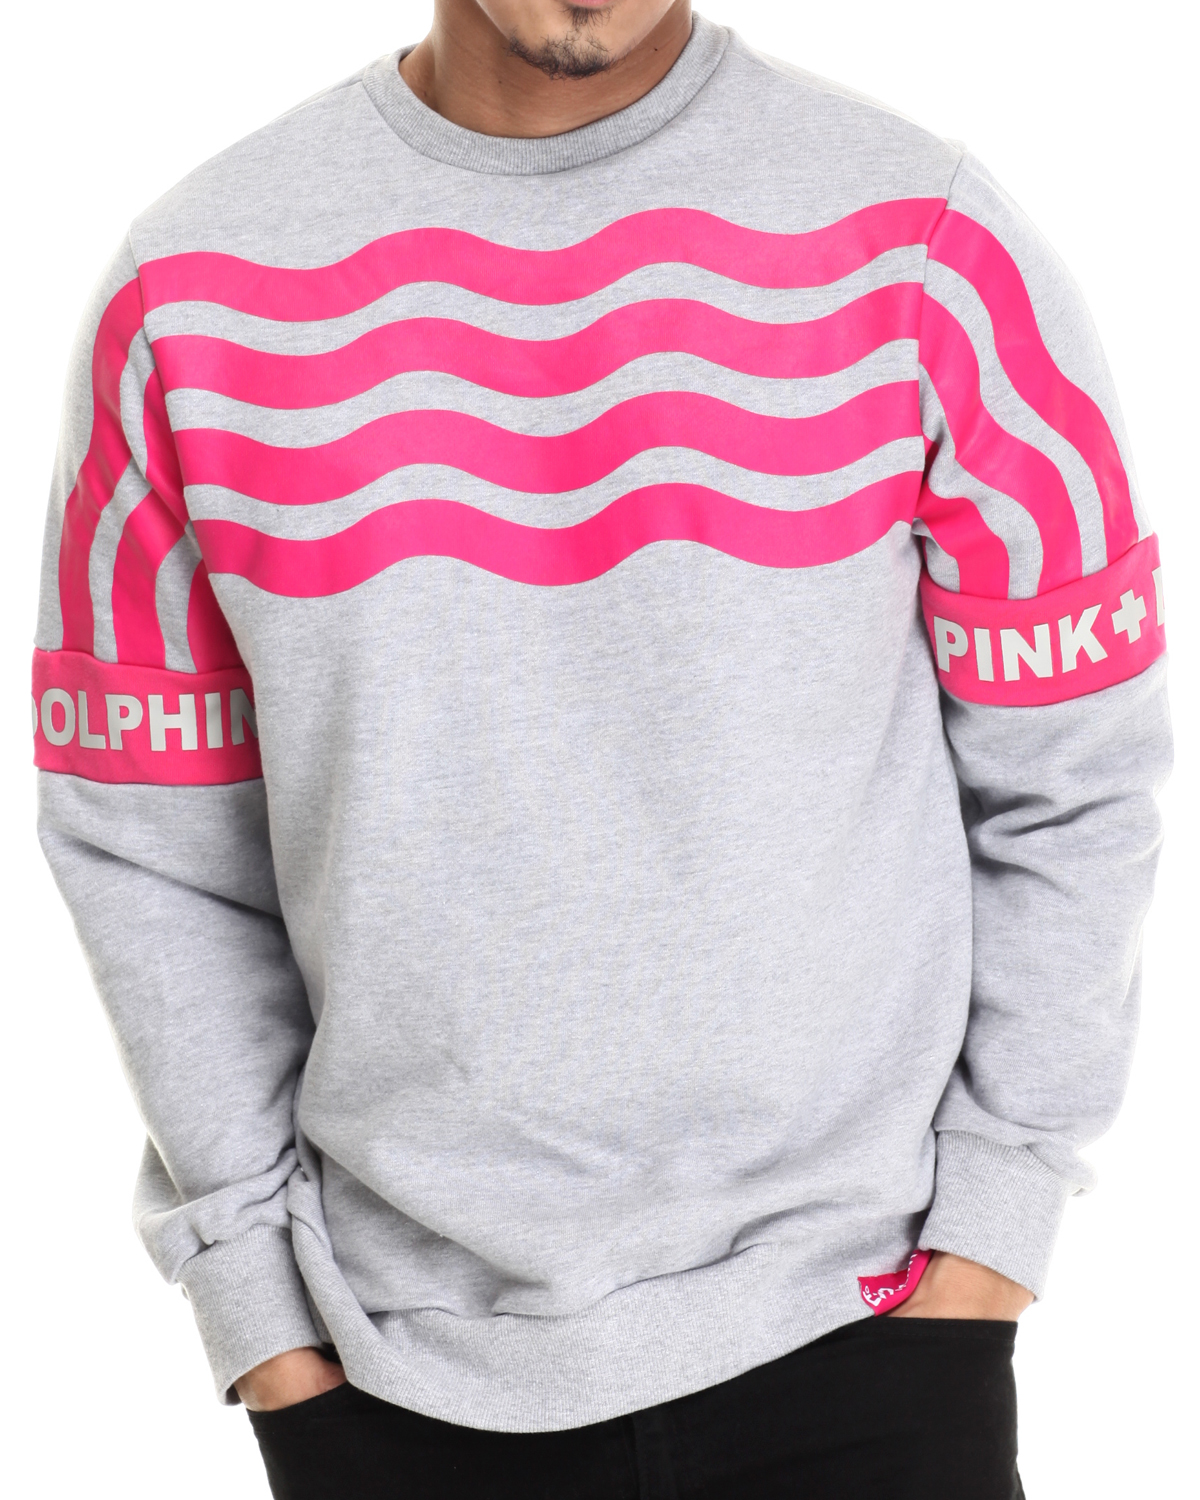 Stripe crewneck sweatshirt by pink dolphin